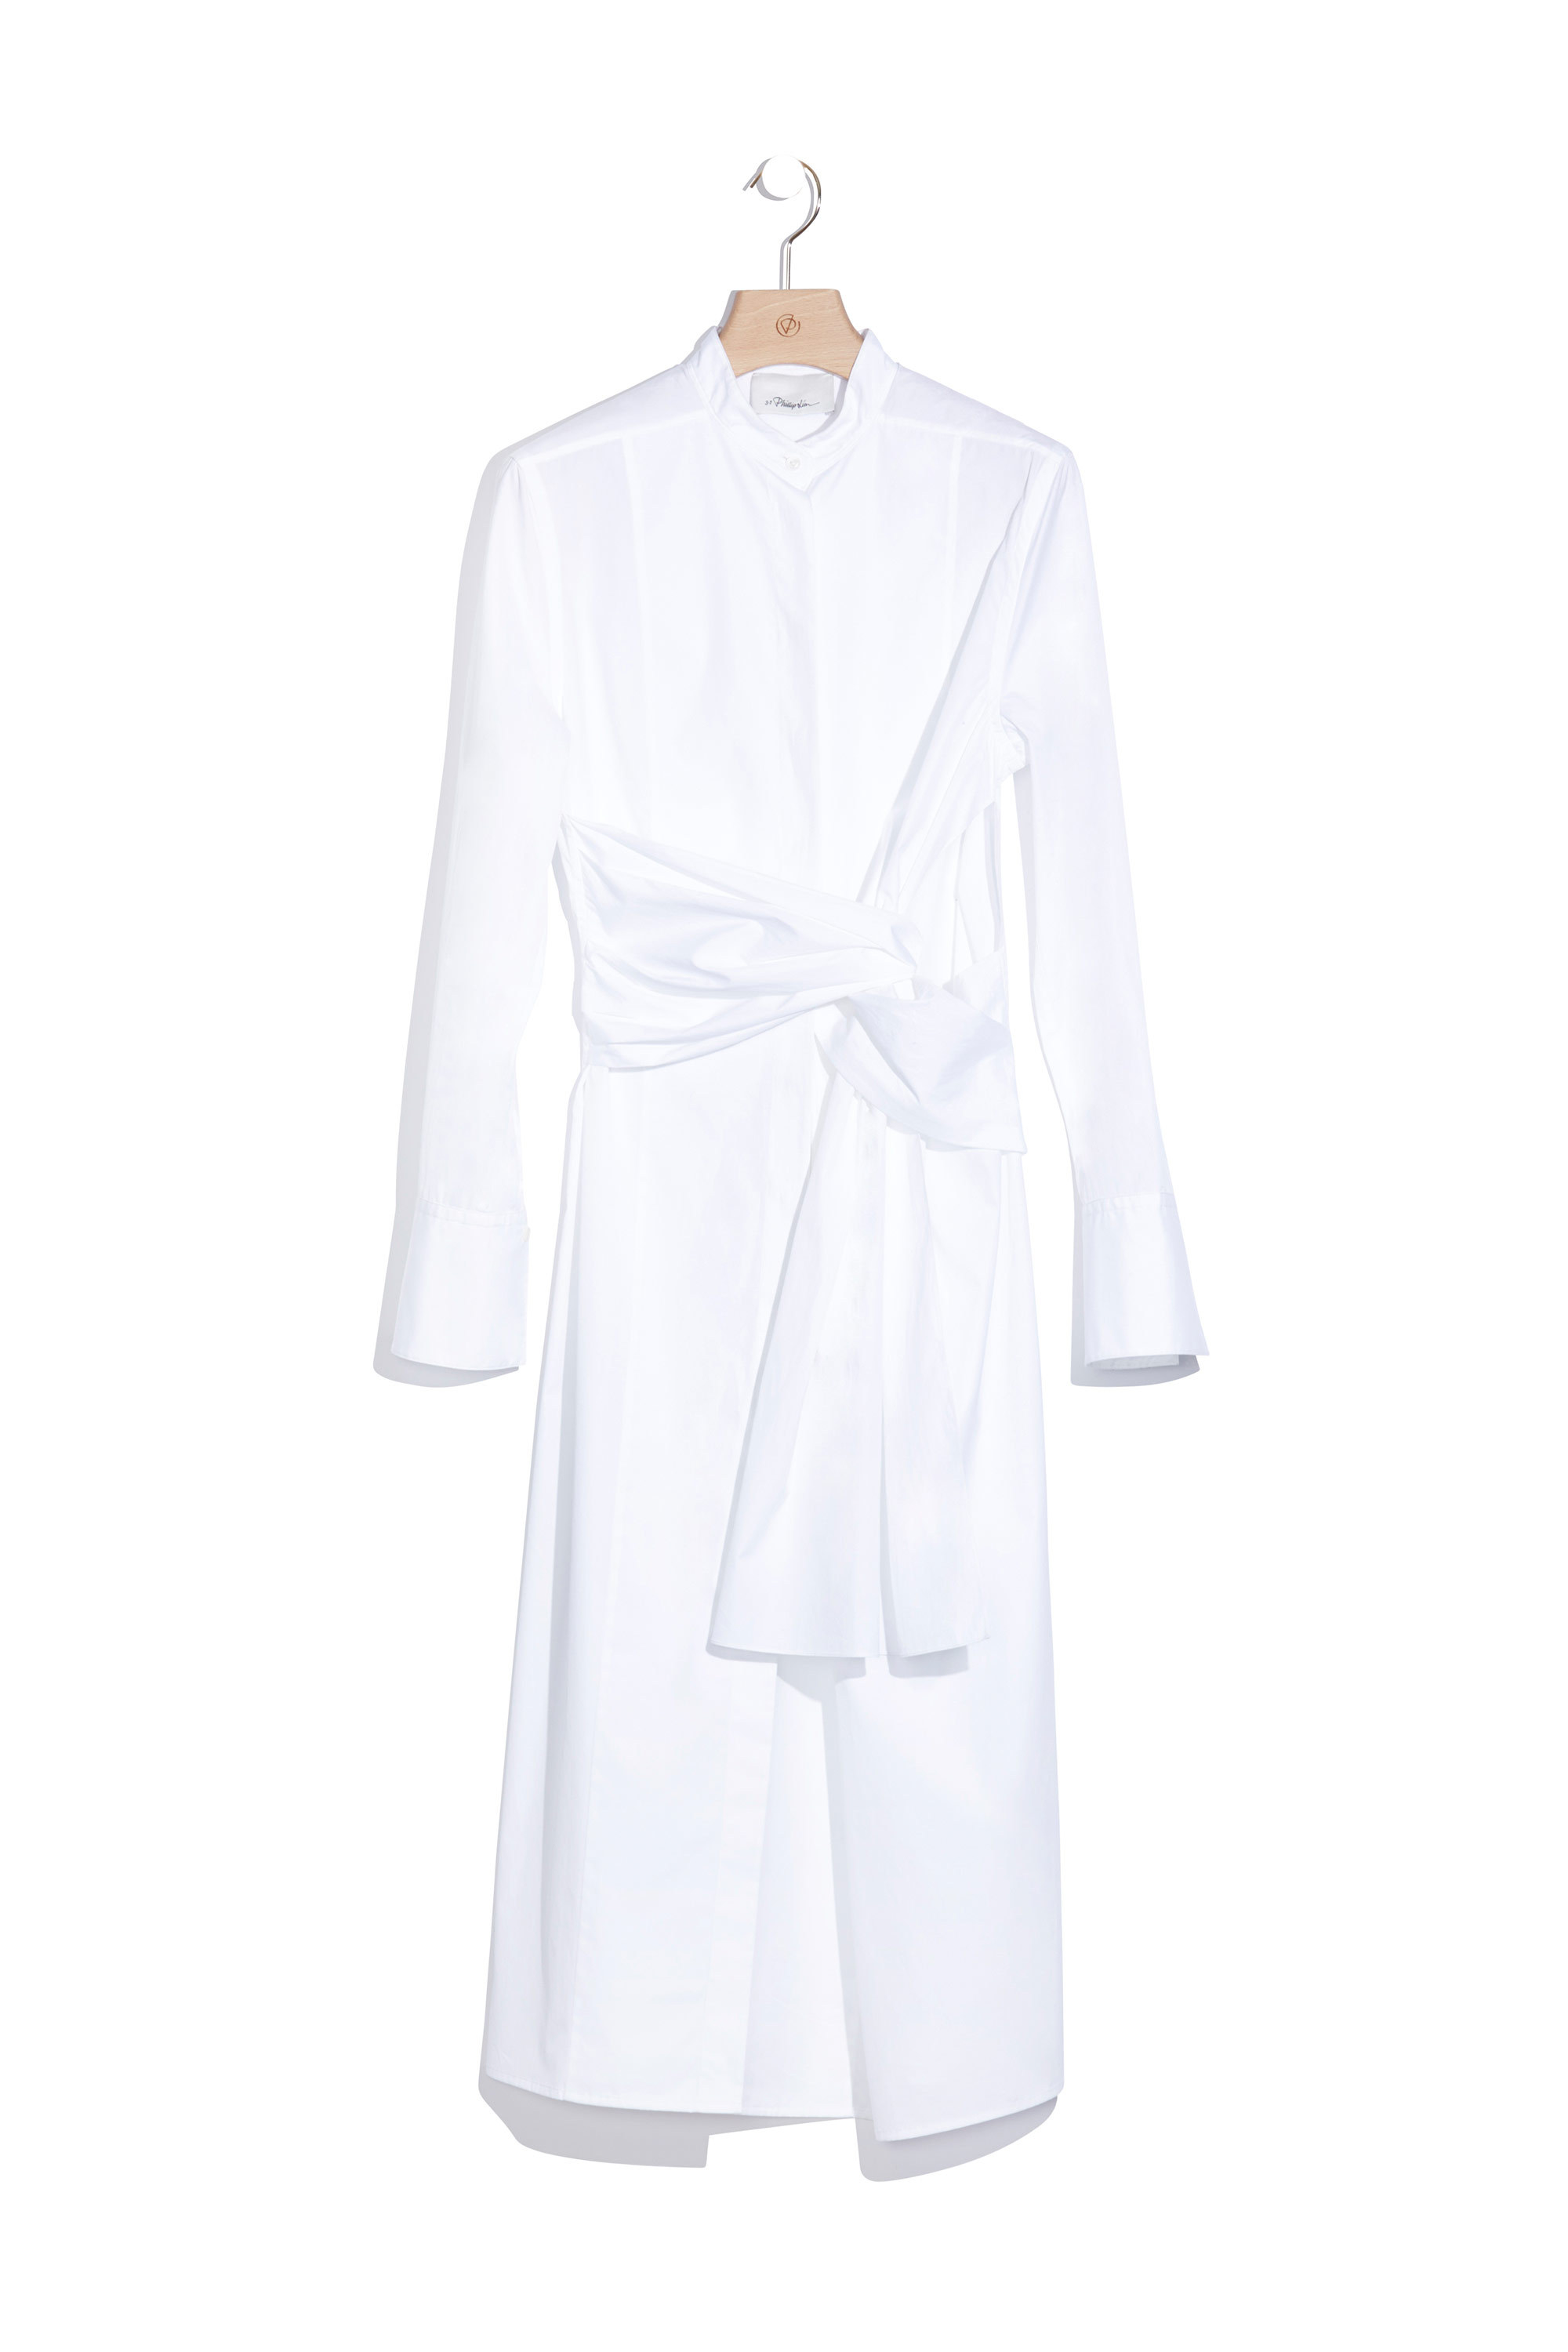 3 1 phillip lim long sleeve shirtdress with twist detail